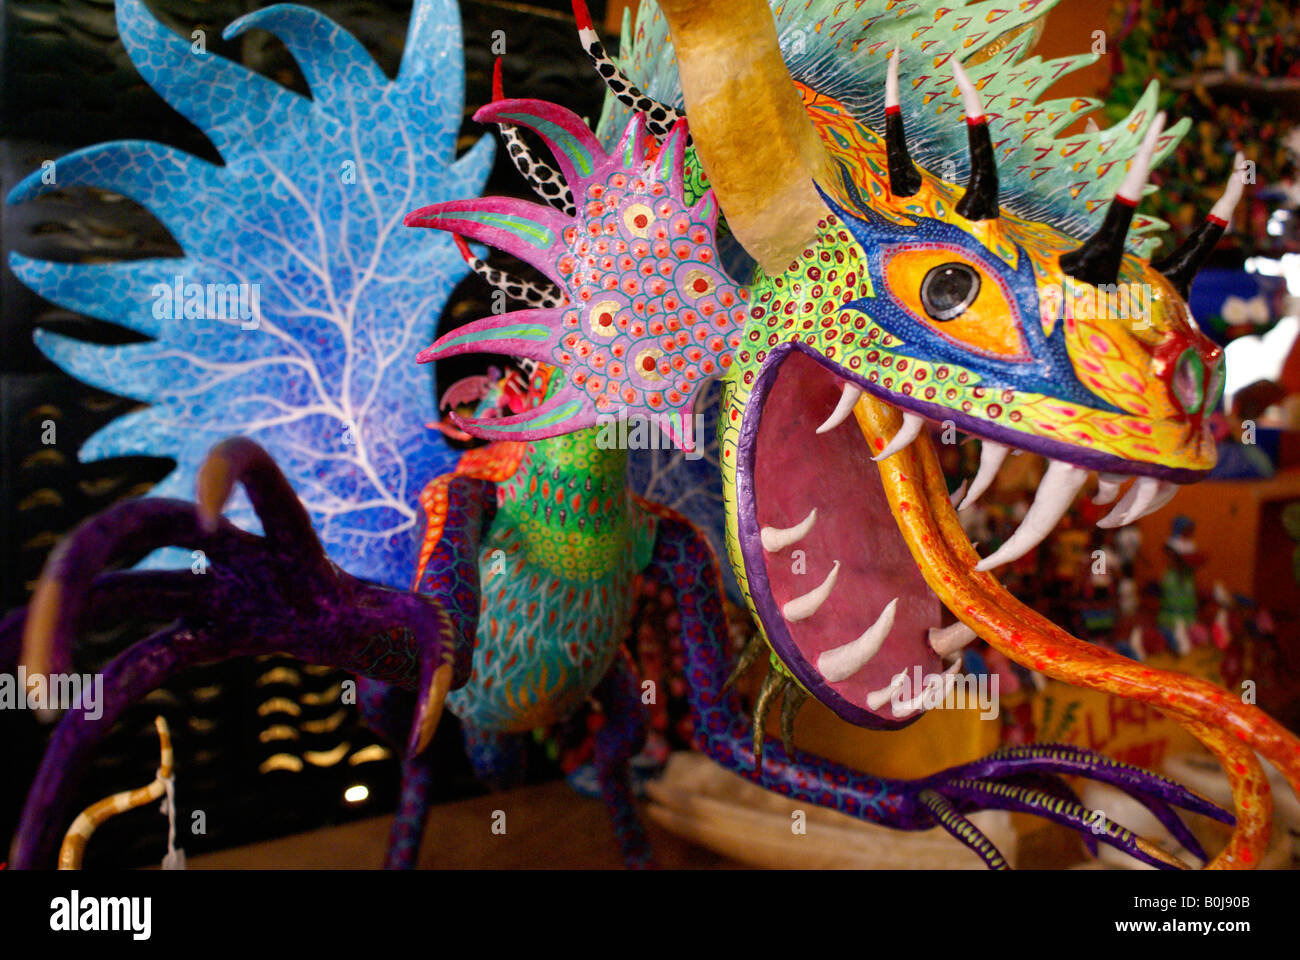 painted-dragon-or-alebrije-from-oaxaca-m